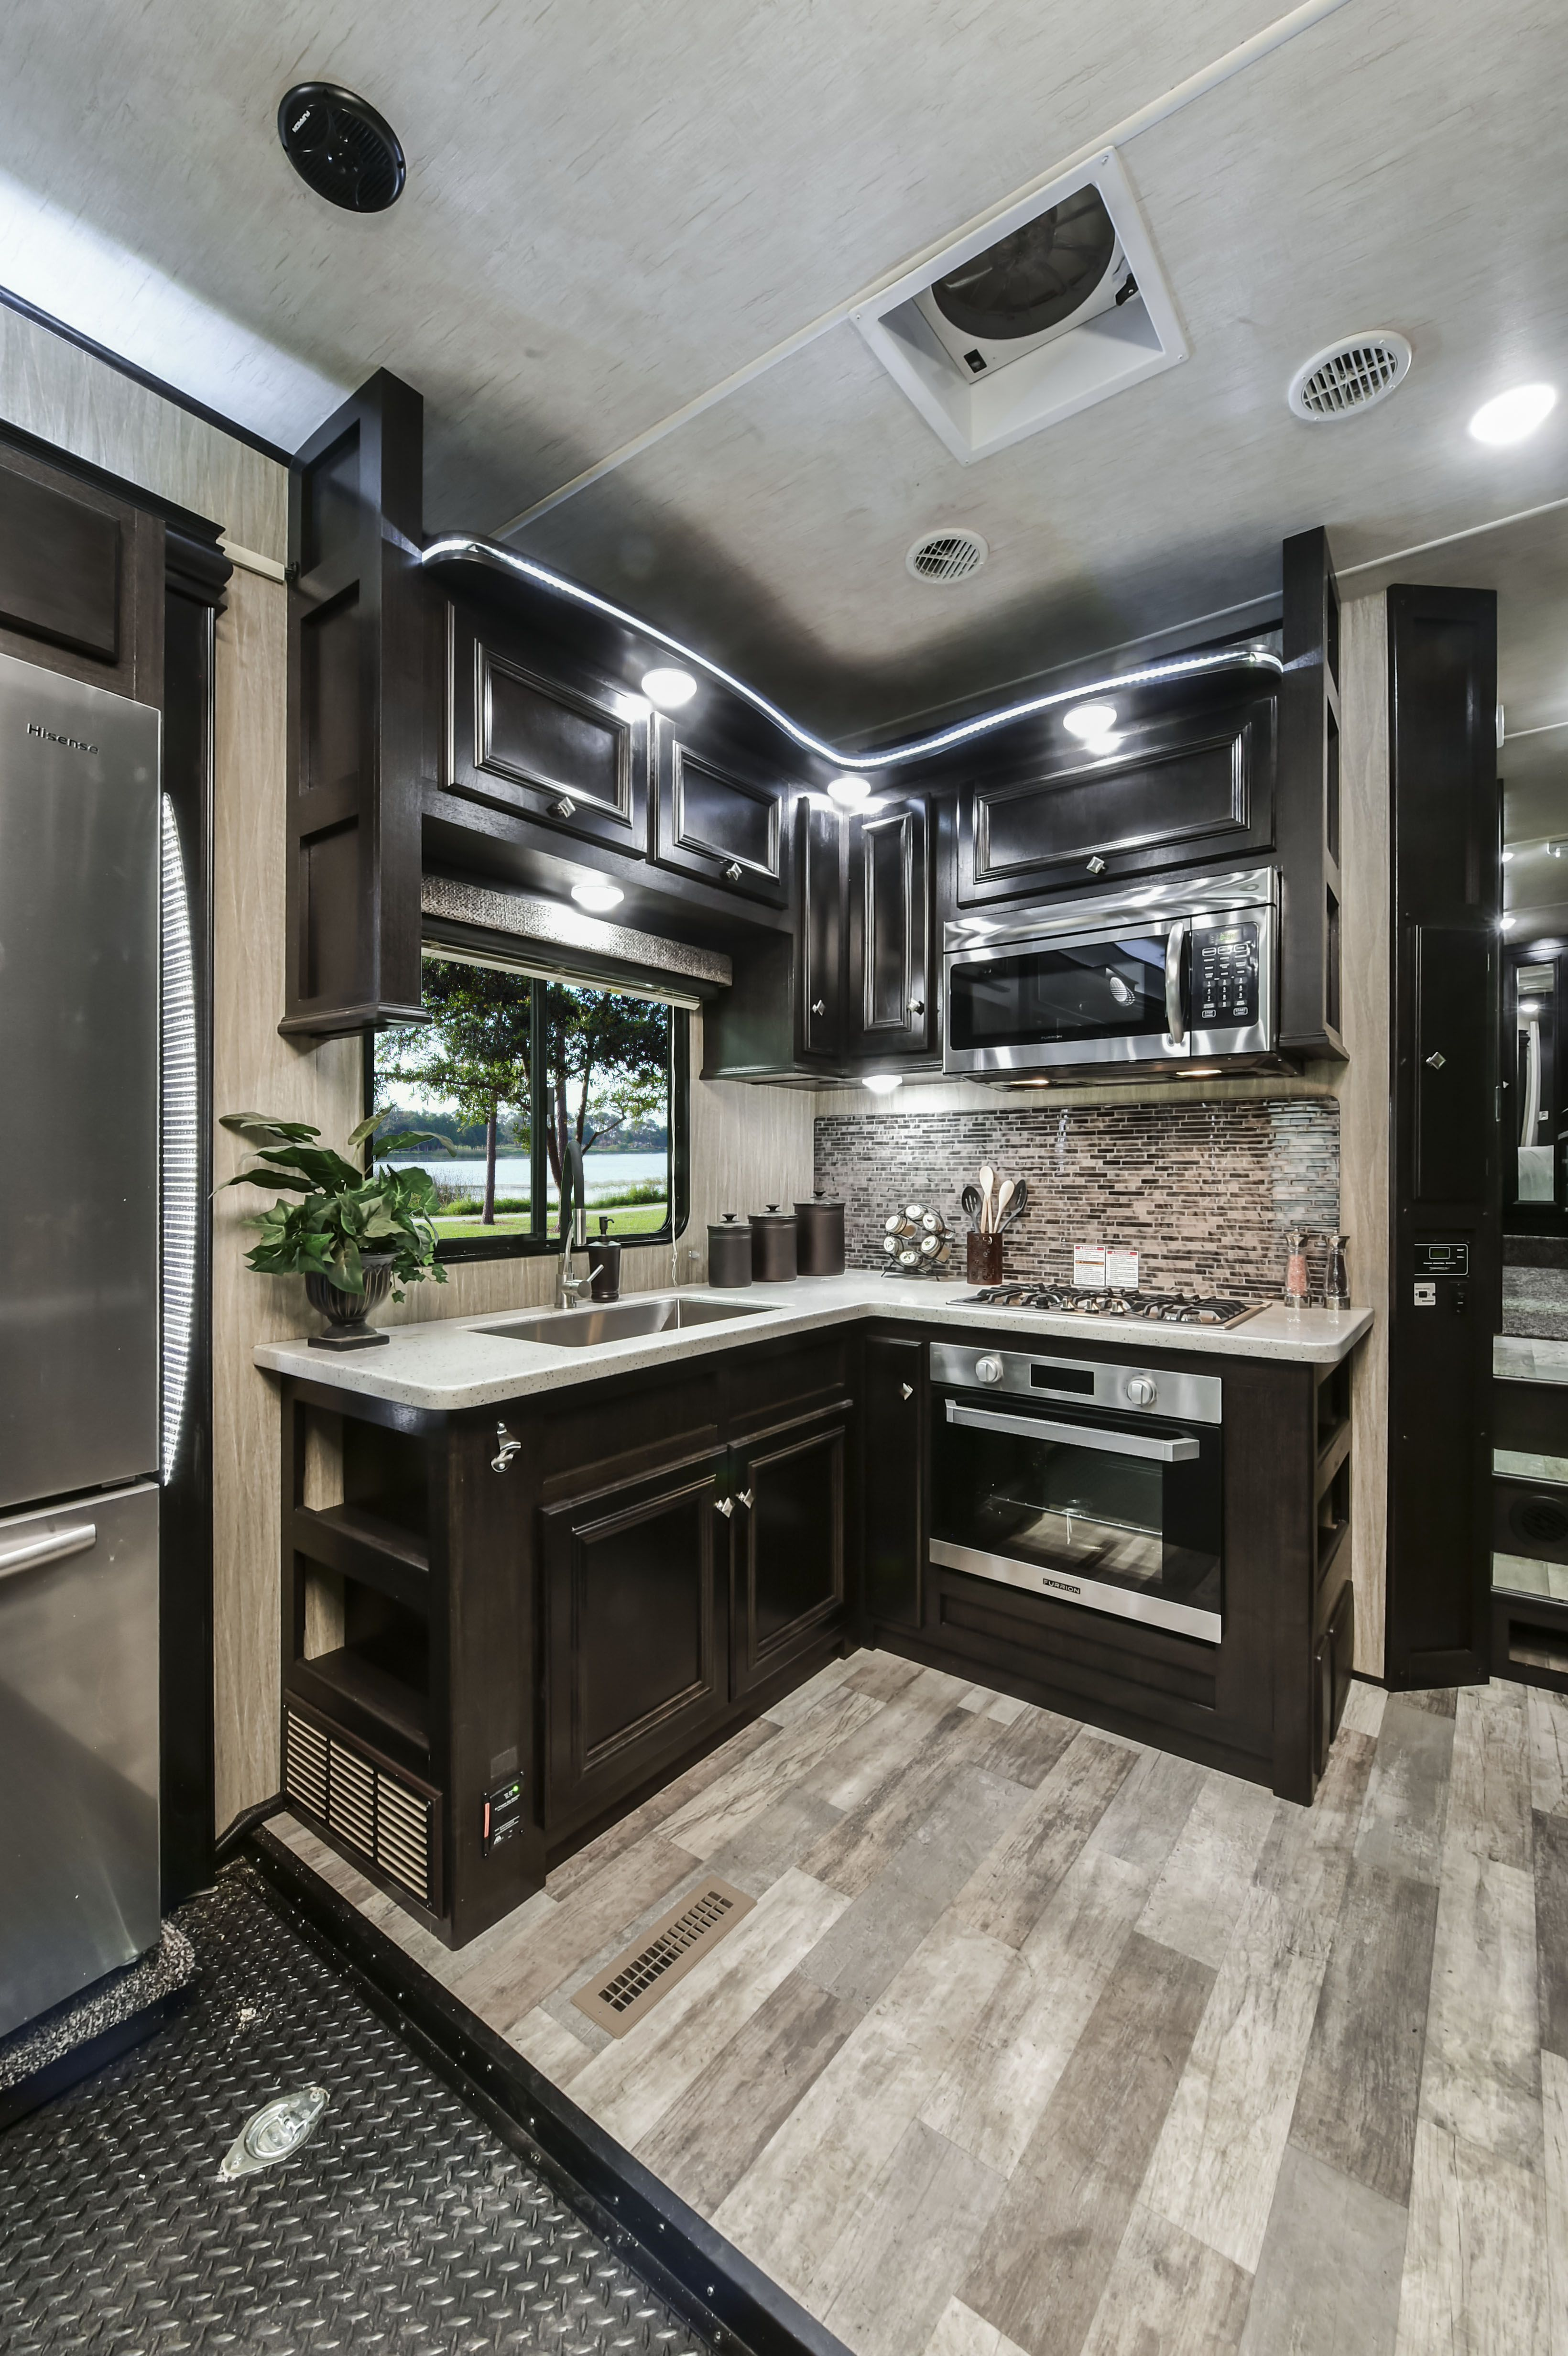 Road Warrior 411 Toy Hauler Fifth Wheel Luxury Rv Kitchen Decor Pictures Kitchen Decor